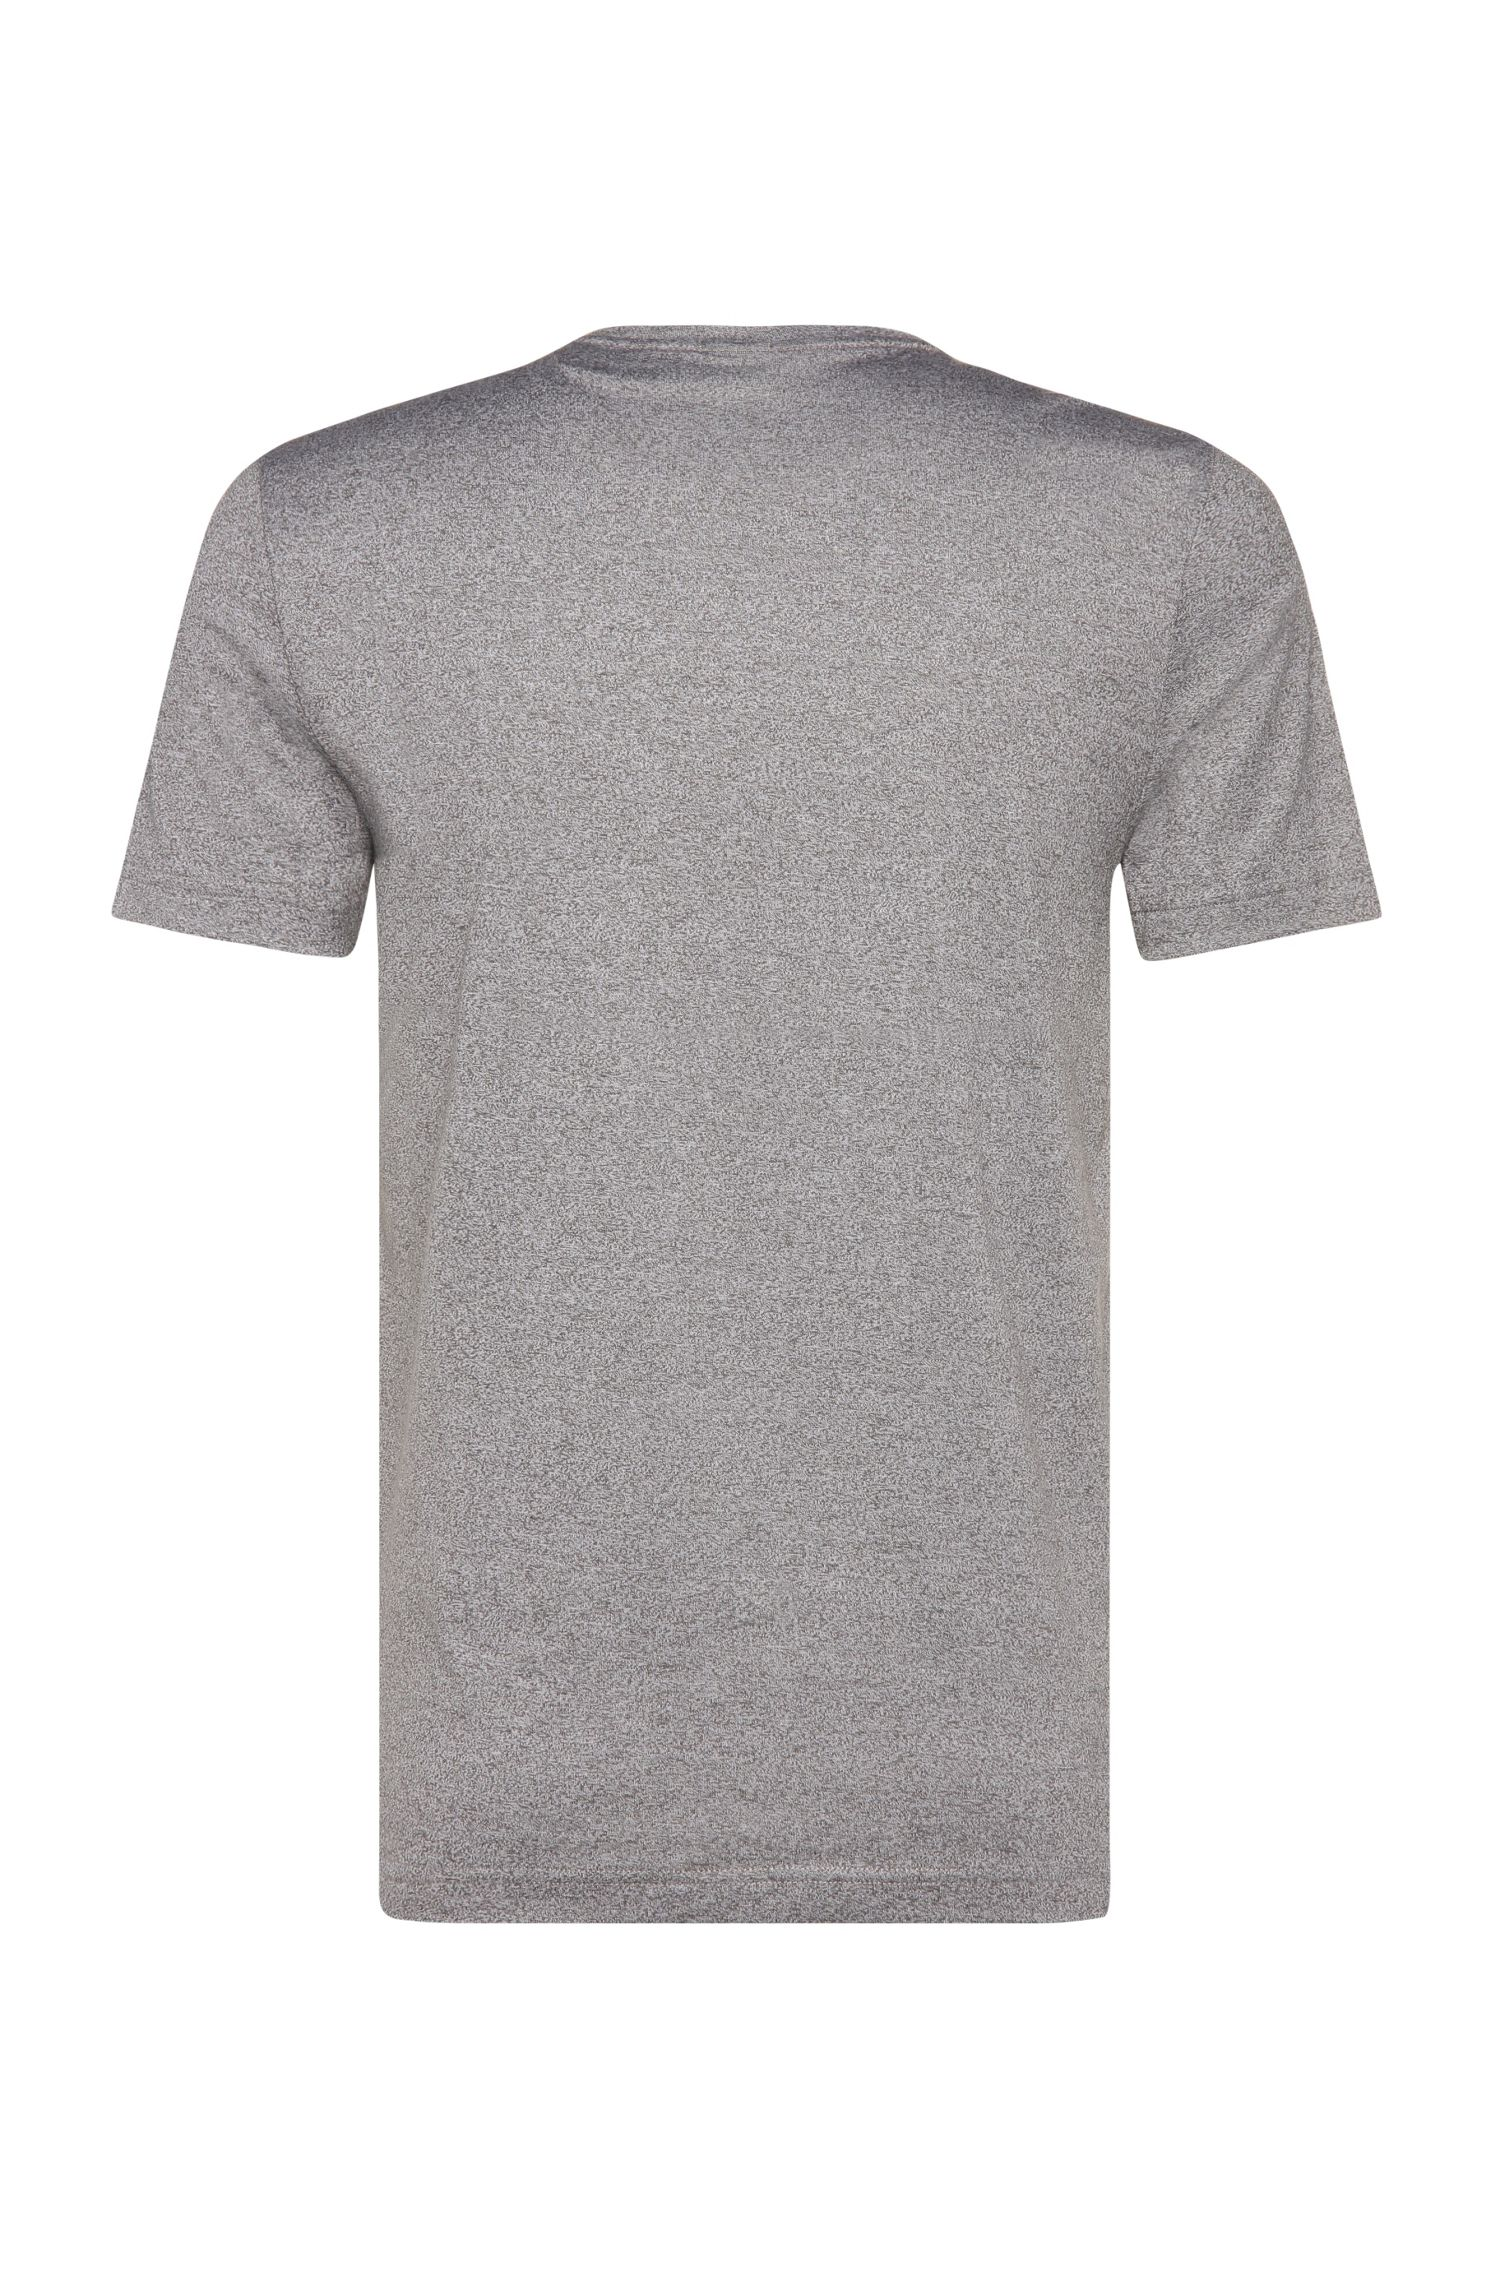 Meliertes Slim-Fit T-Shirt aus Baumwoll-Mix: ´Tee 9`